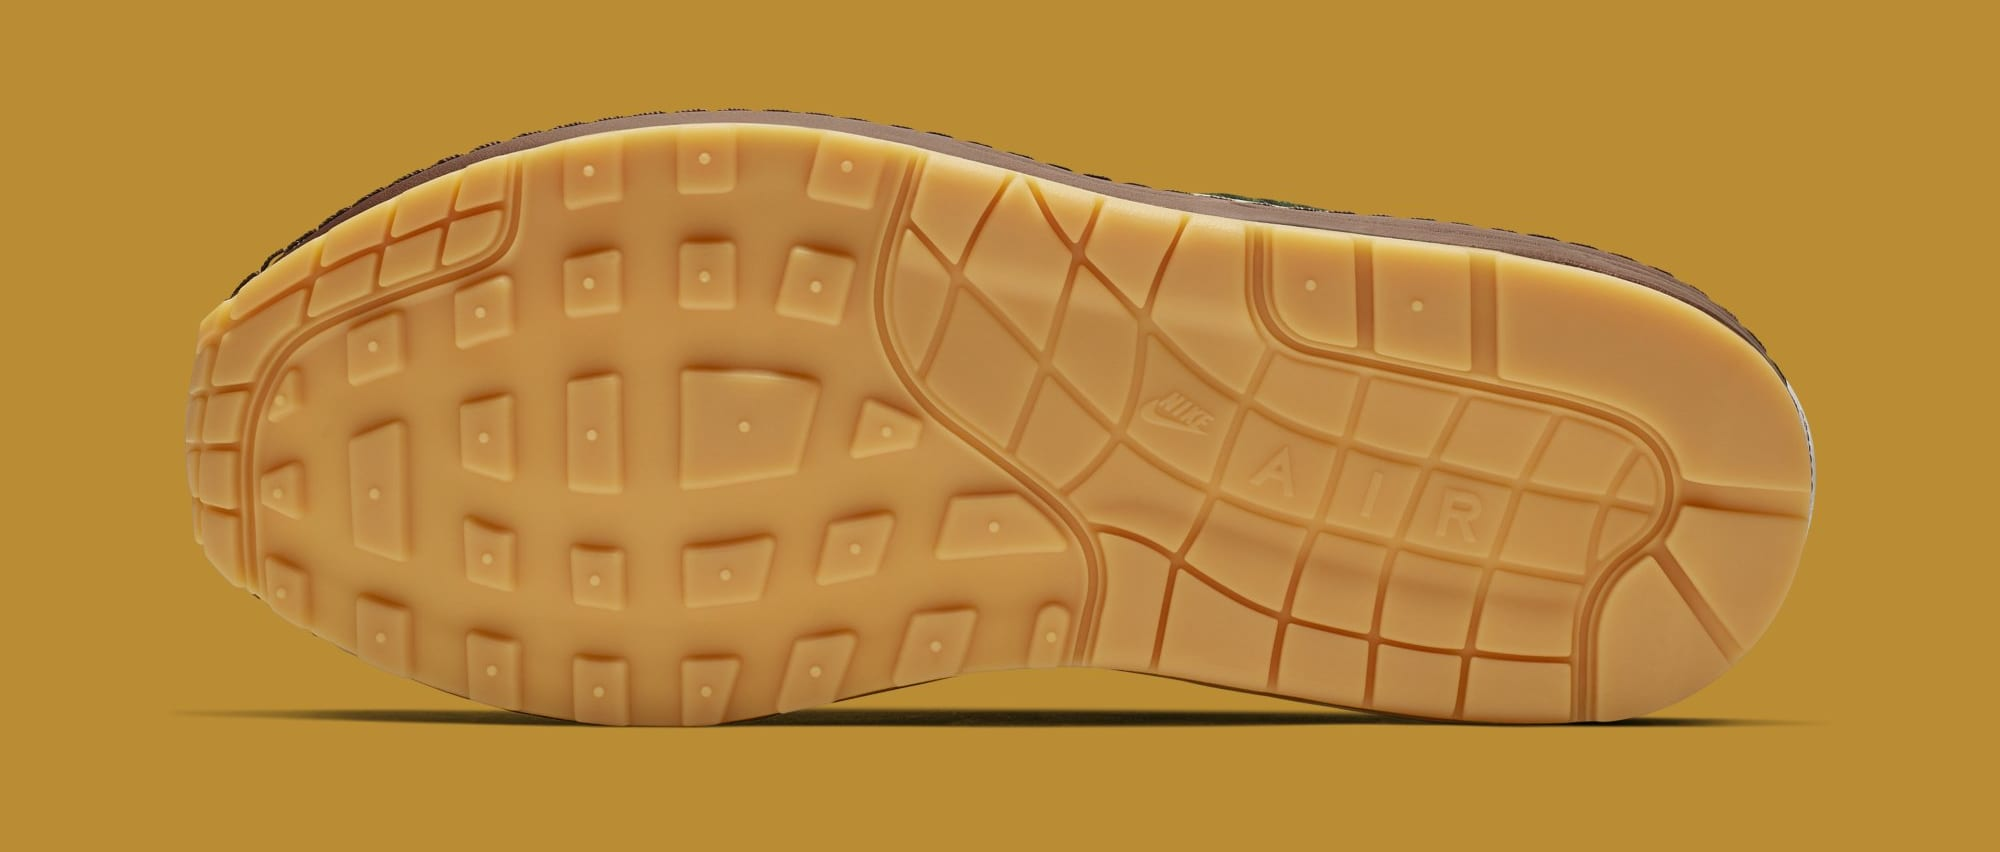 fd207ea6107f7 Laika x Nike Air Max Susan 'Missing Link' CK6643-100 Release Date   Sole  Collector